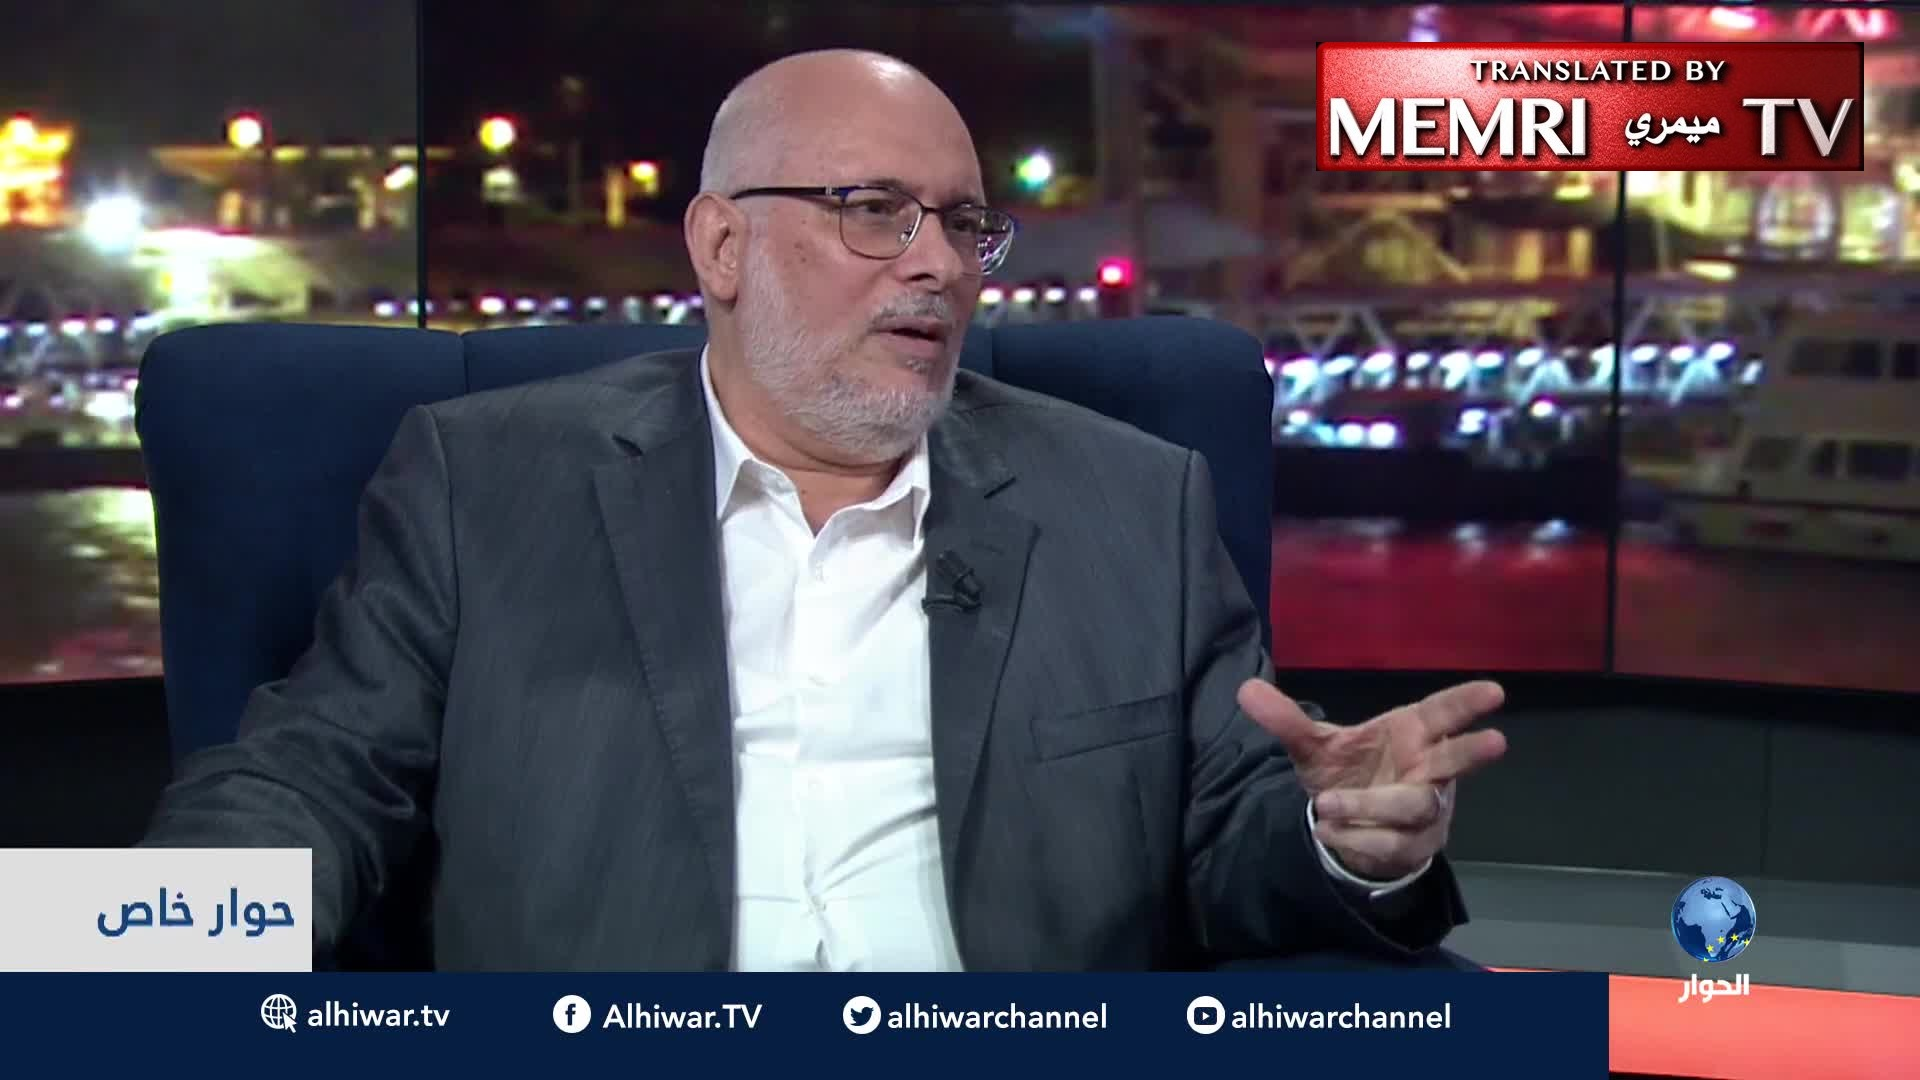 Maher Salah, Head of Hamas Abroad: Those Who Normalize Relations with Israel Are Committing Treason, Should Be Excommunicated; Israel Is the Root of All Evil in the Region